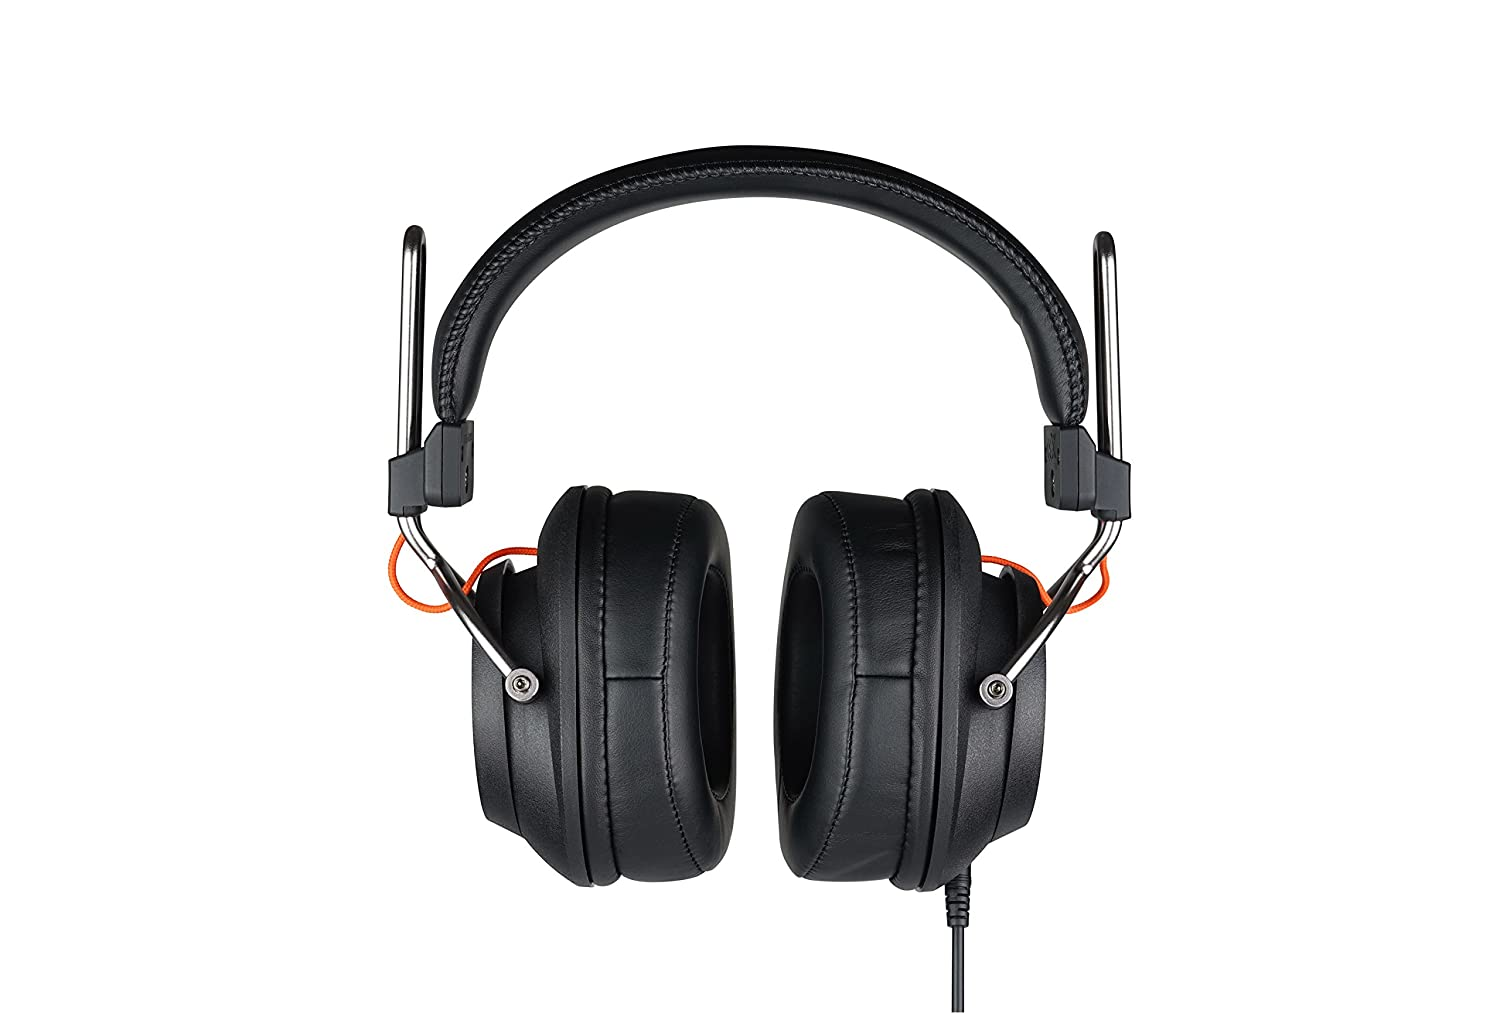 Amazon.com: Fostex TR-70-80 Open-Design Dynamic Stereo Headphones, 80 Ohms: Musical Instruments